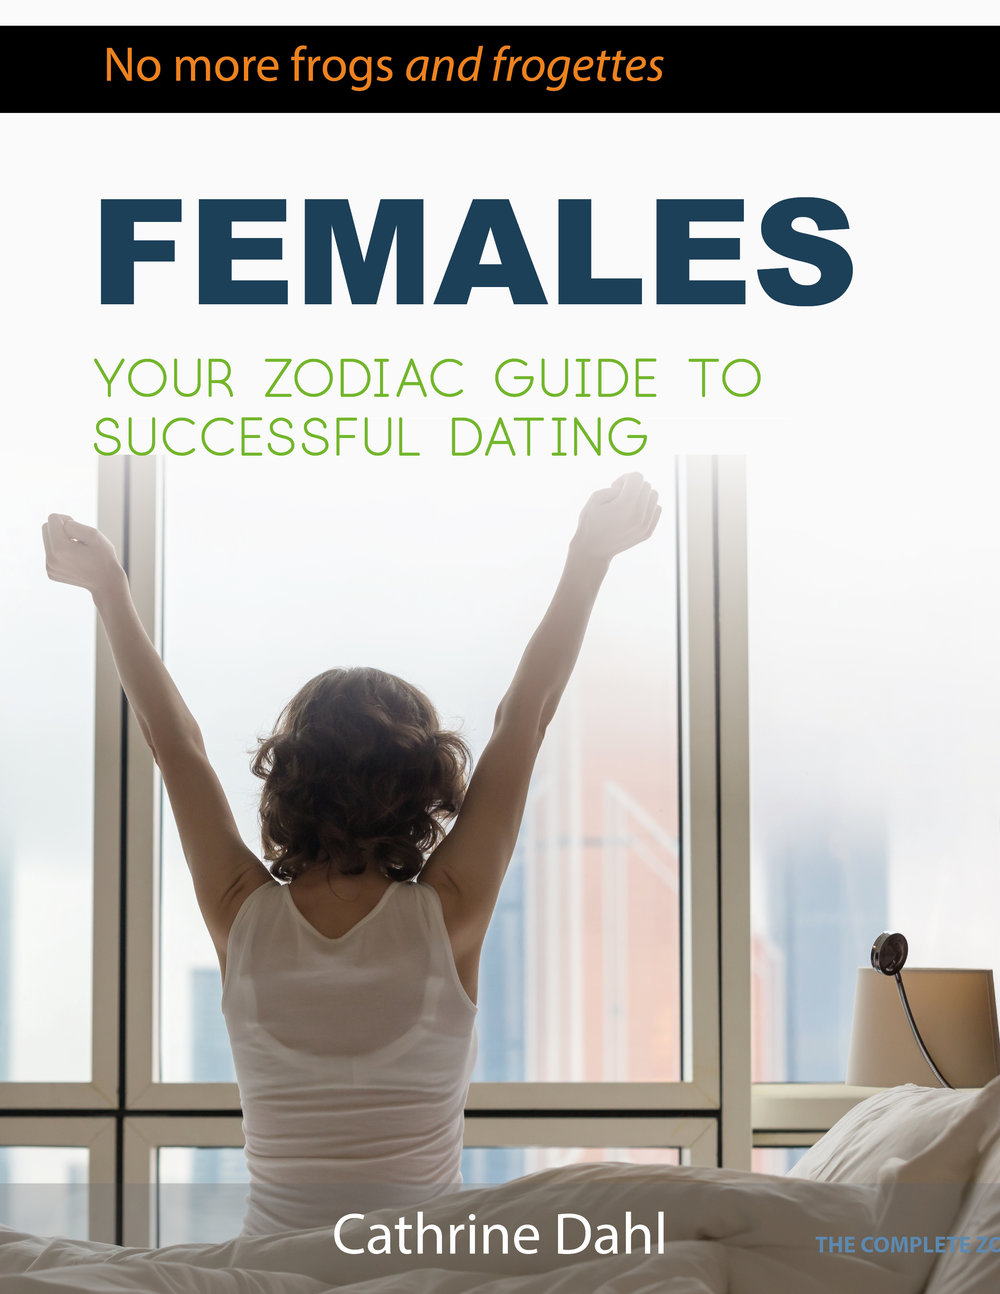 Your Guide toThe Females - Discover the mysteries behind the women in the zodiac and get a head start before going on a date. This complete manual includes all the twelve star signs.$ 17.99